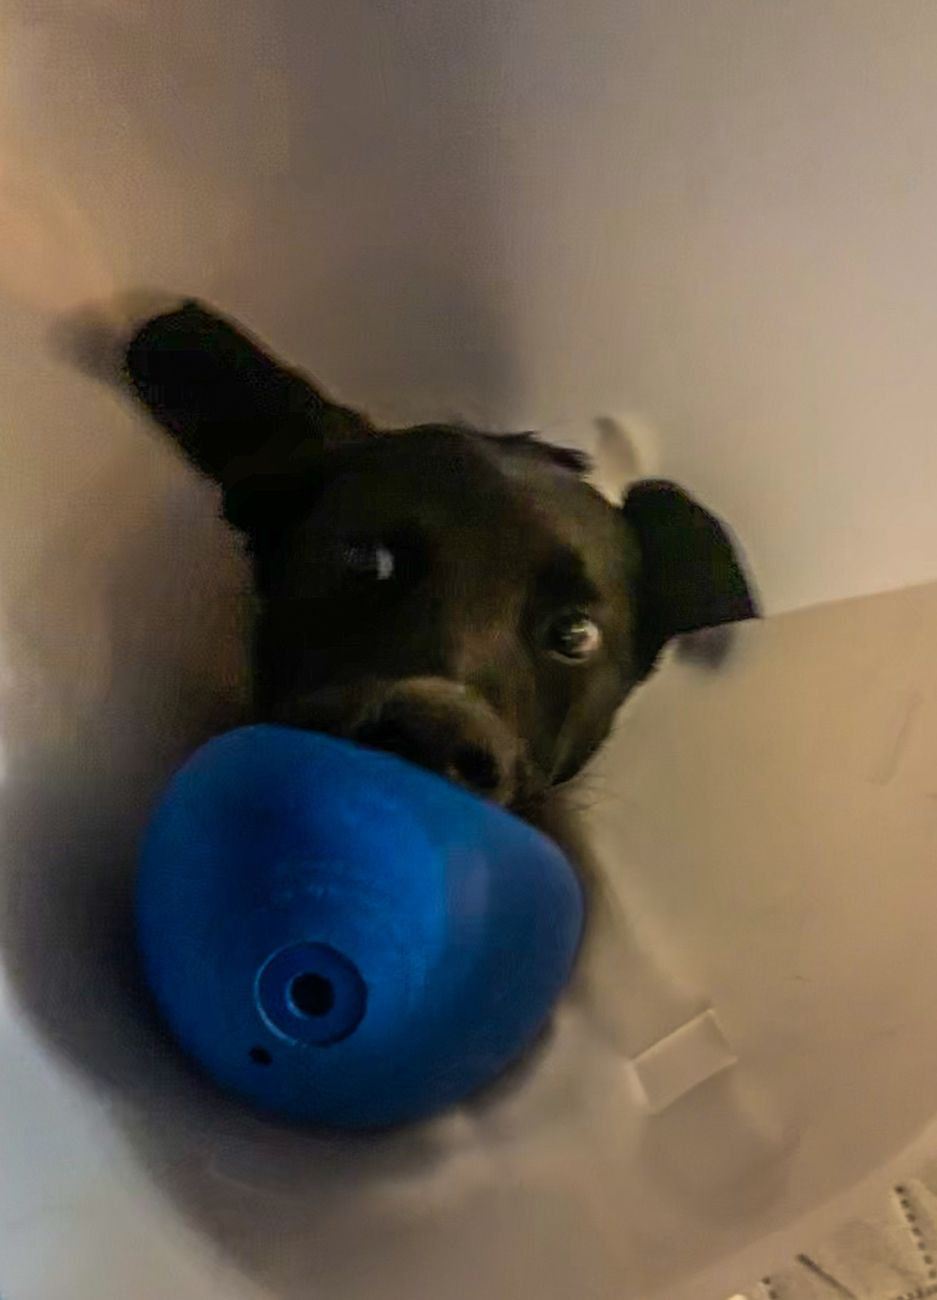 Just got spayed but after meds kicked in found a way to make the most of a bad thing, running around after getting ball some how with that cone on! - baby girl 6 months on Friday...rescued and loved